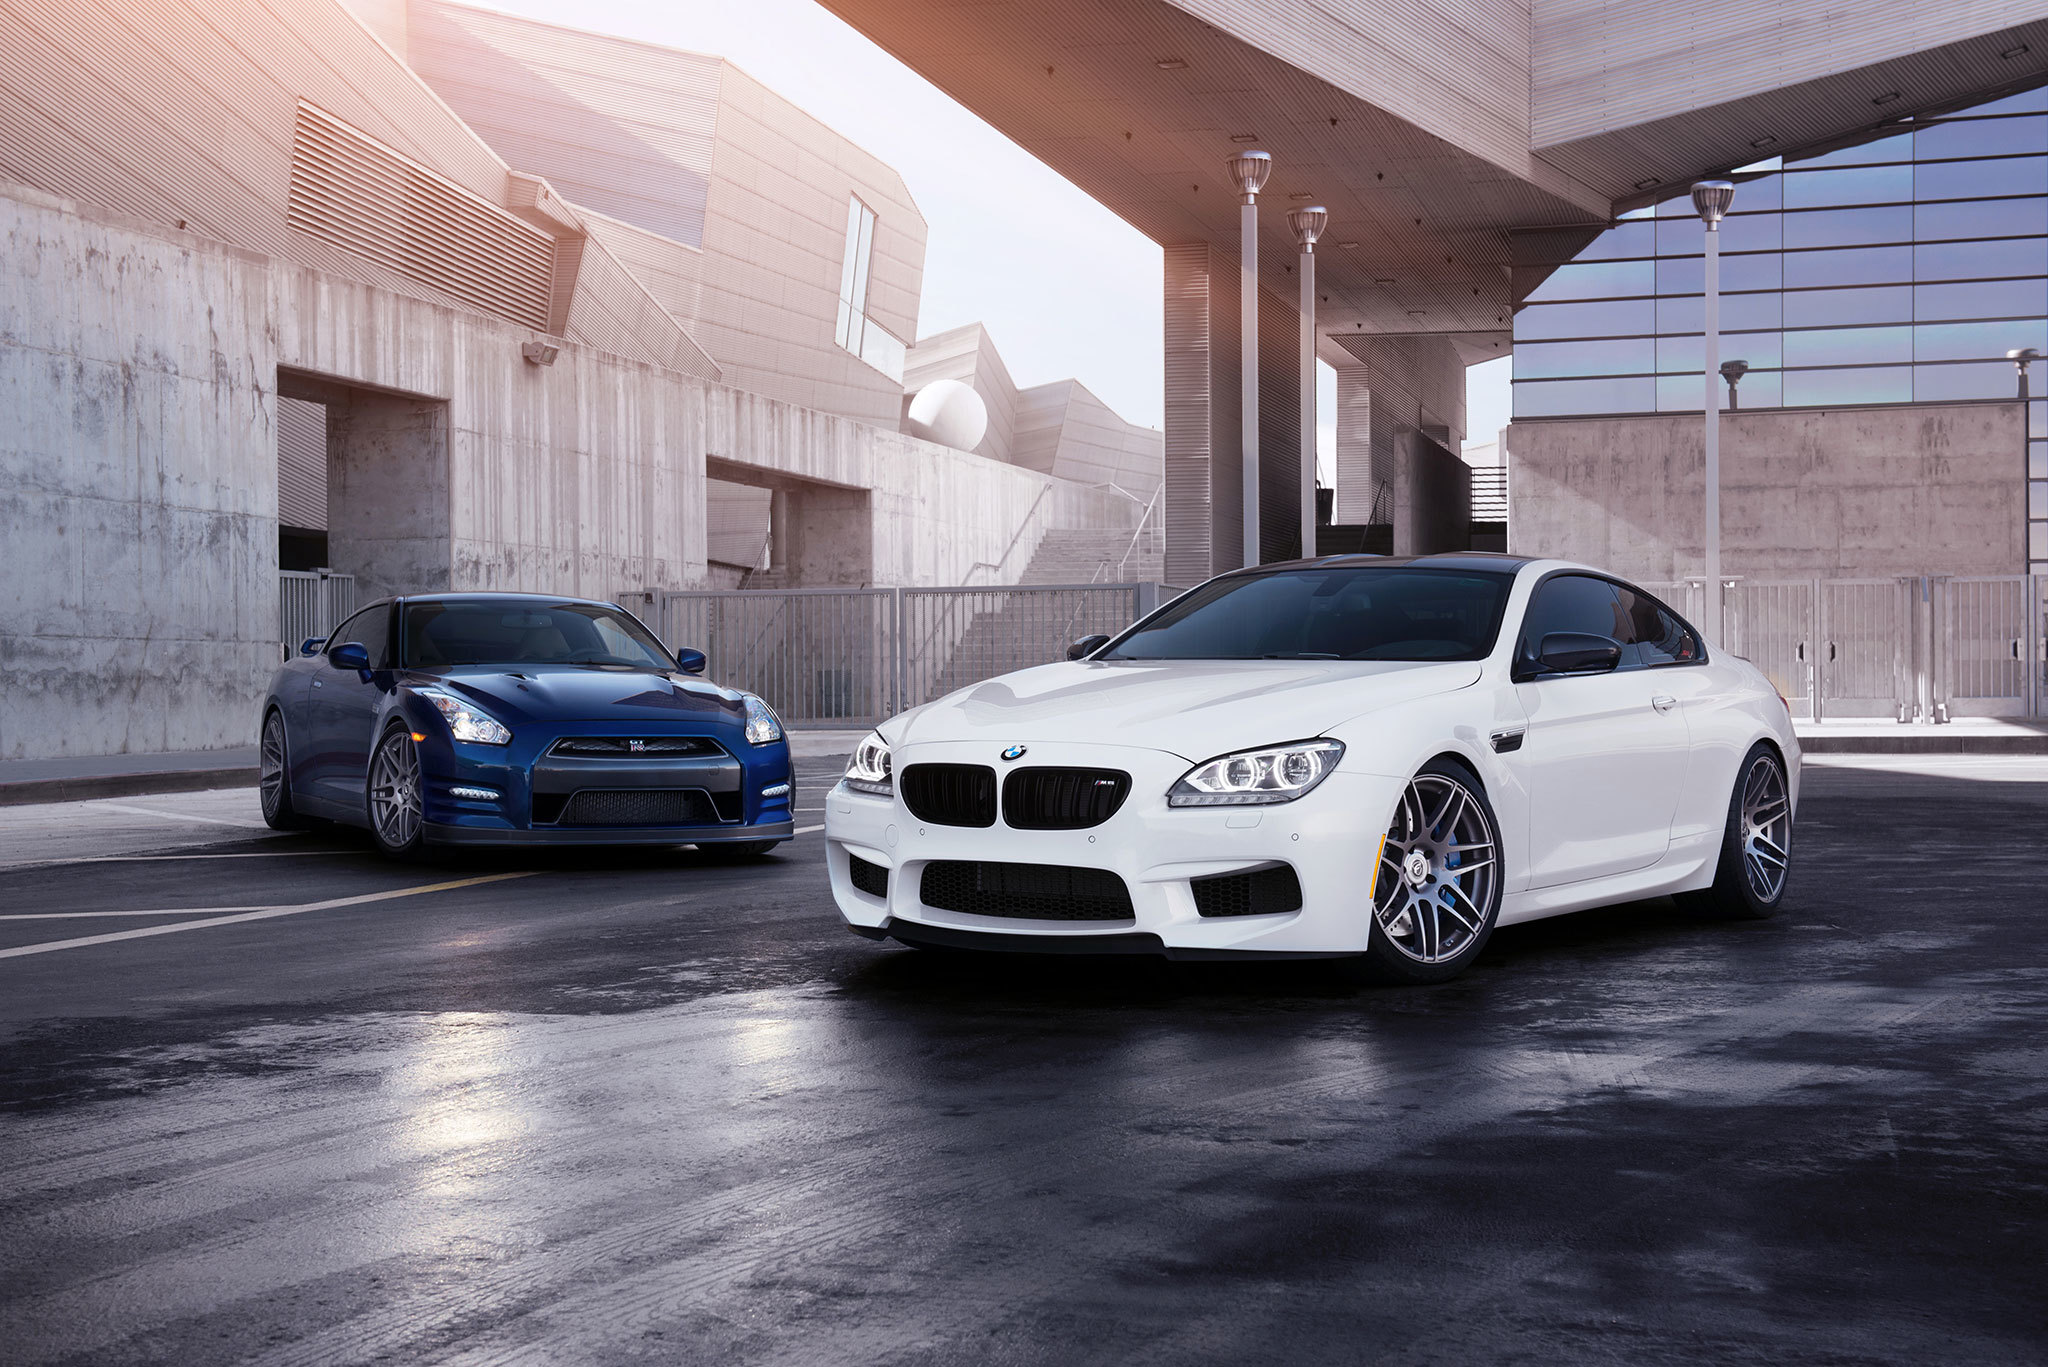 75708 download wallpaper Cars, Bmw M6, Bmw, Nissan Gt-R, Nissan, Auto screensavers and pictures for free